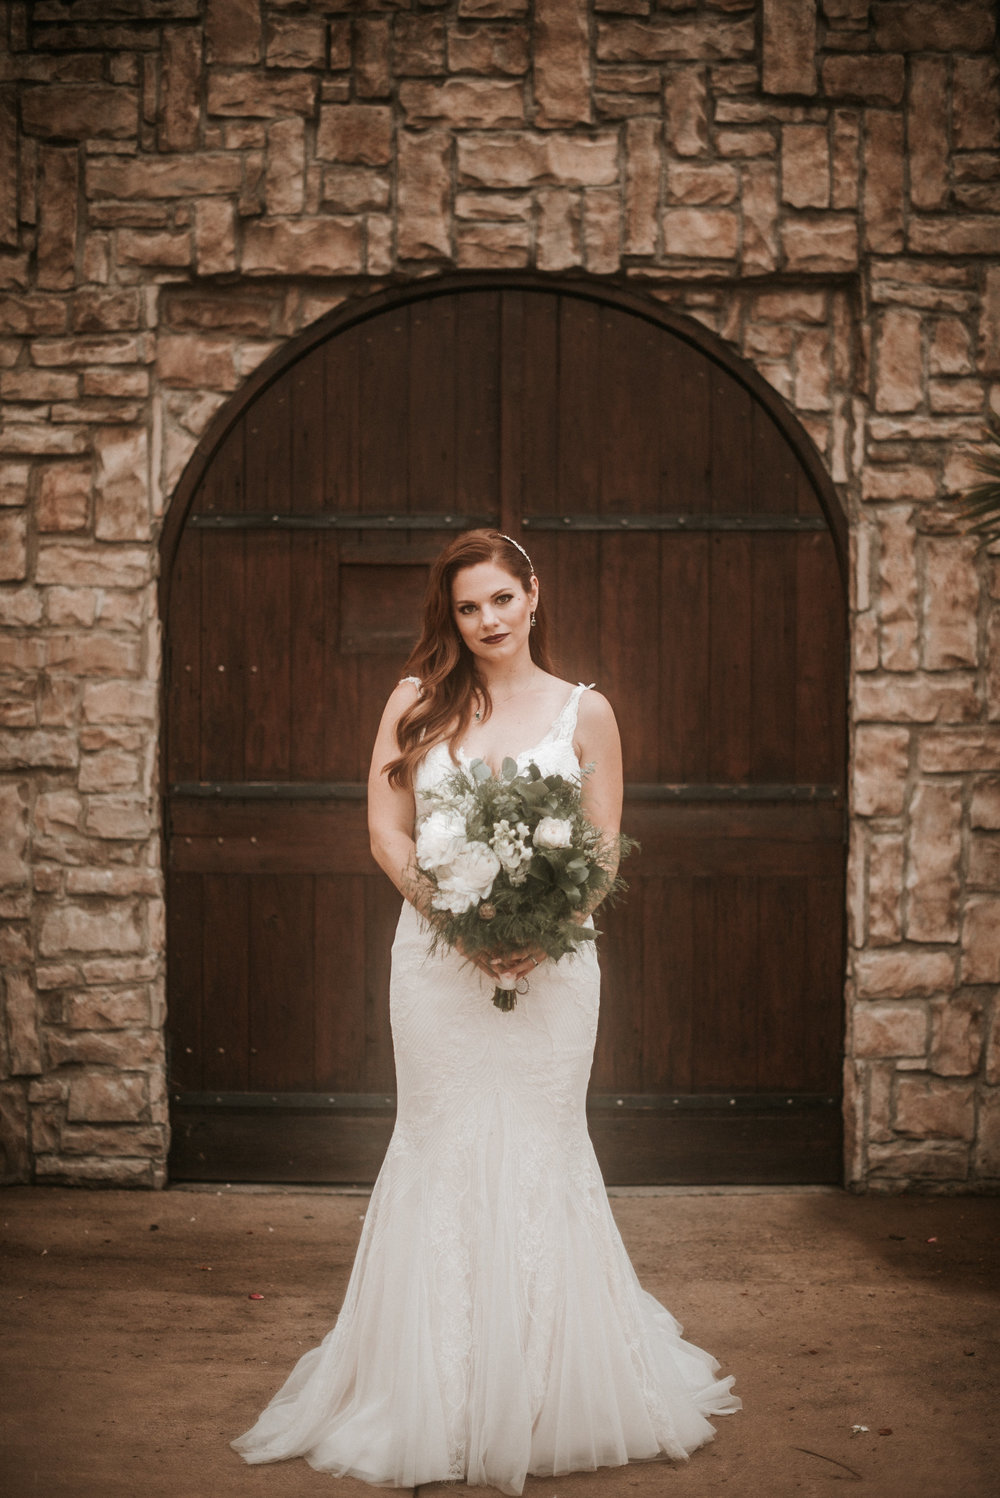 Glowing bride in front of door